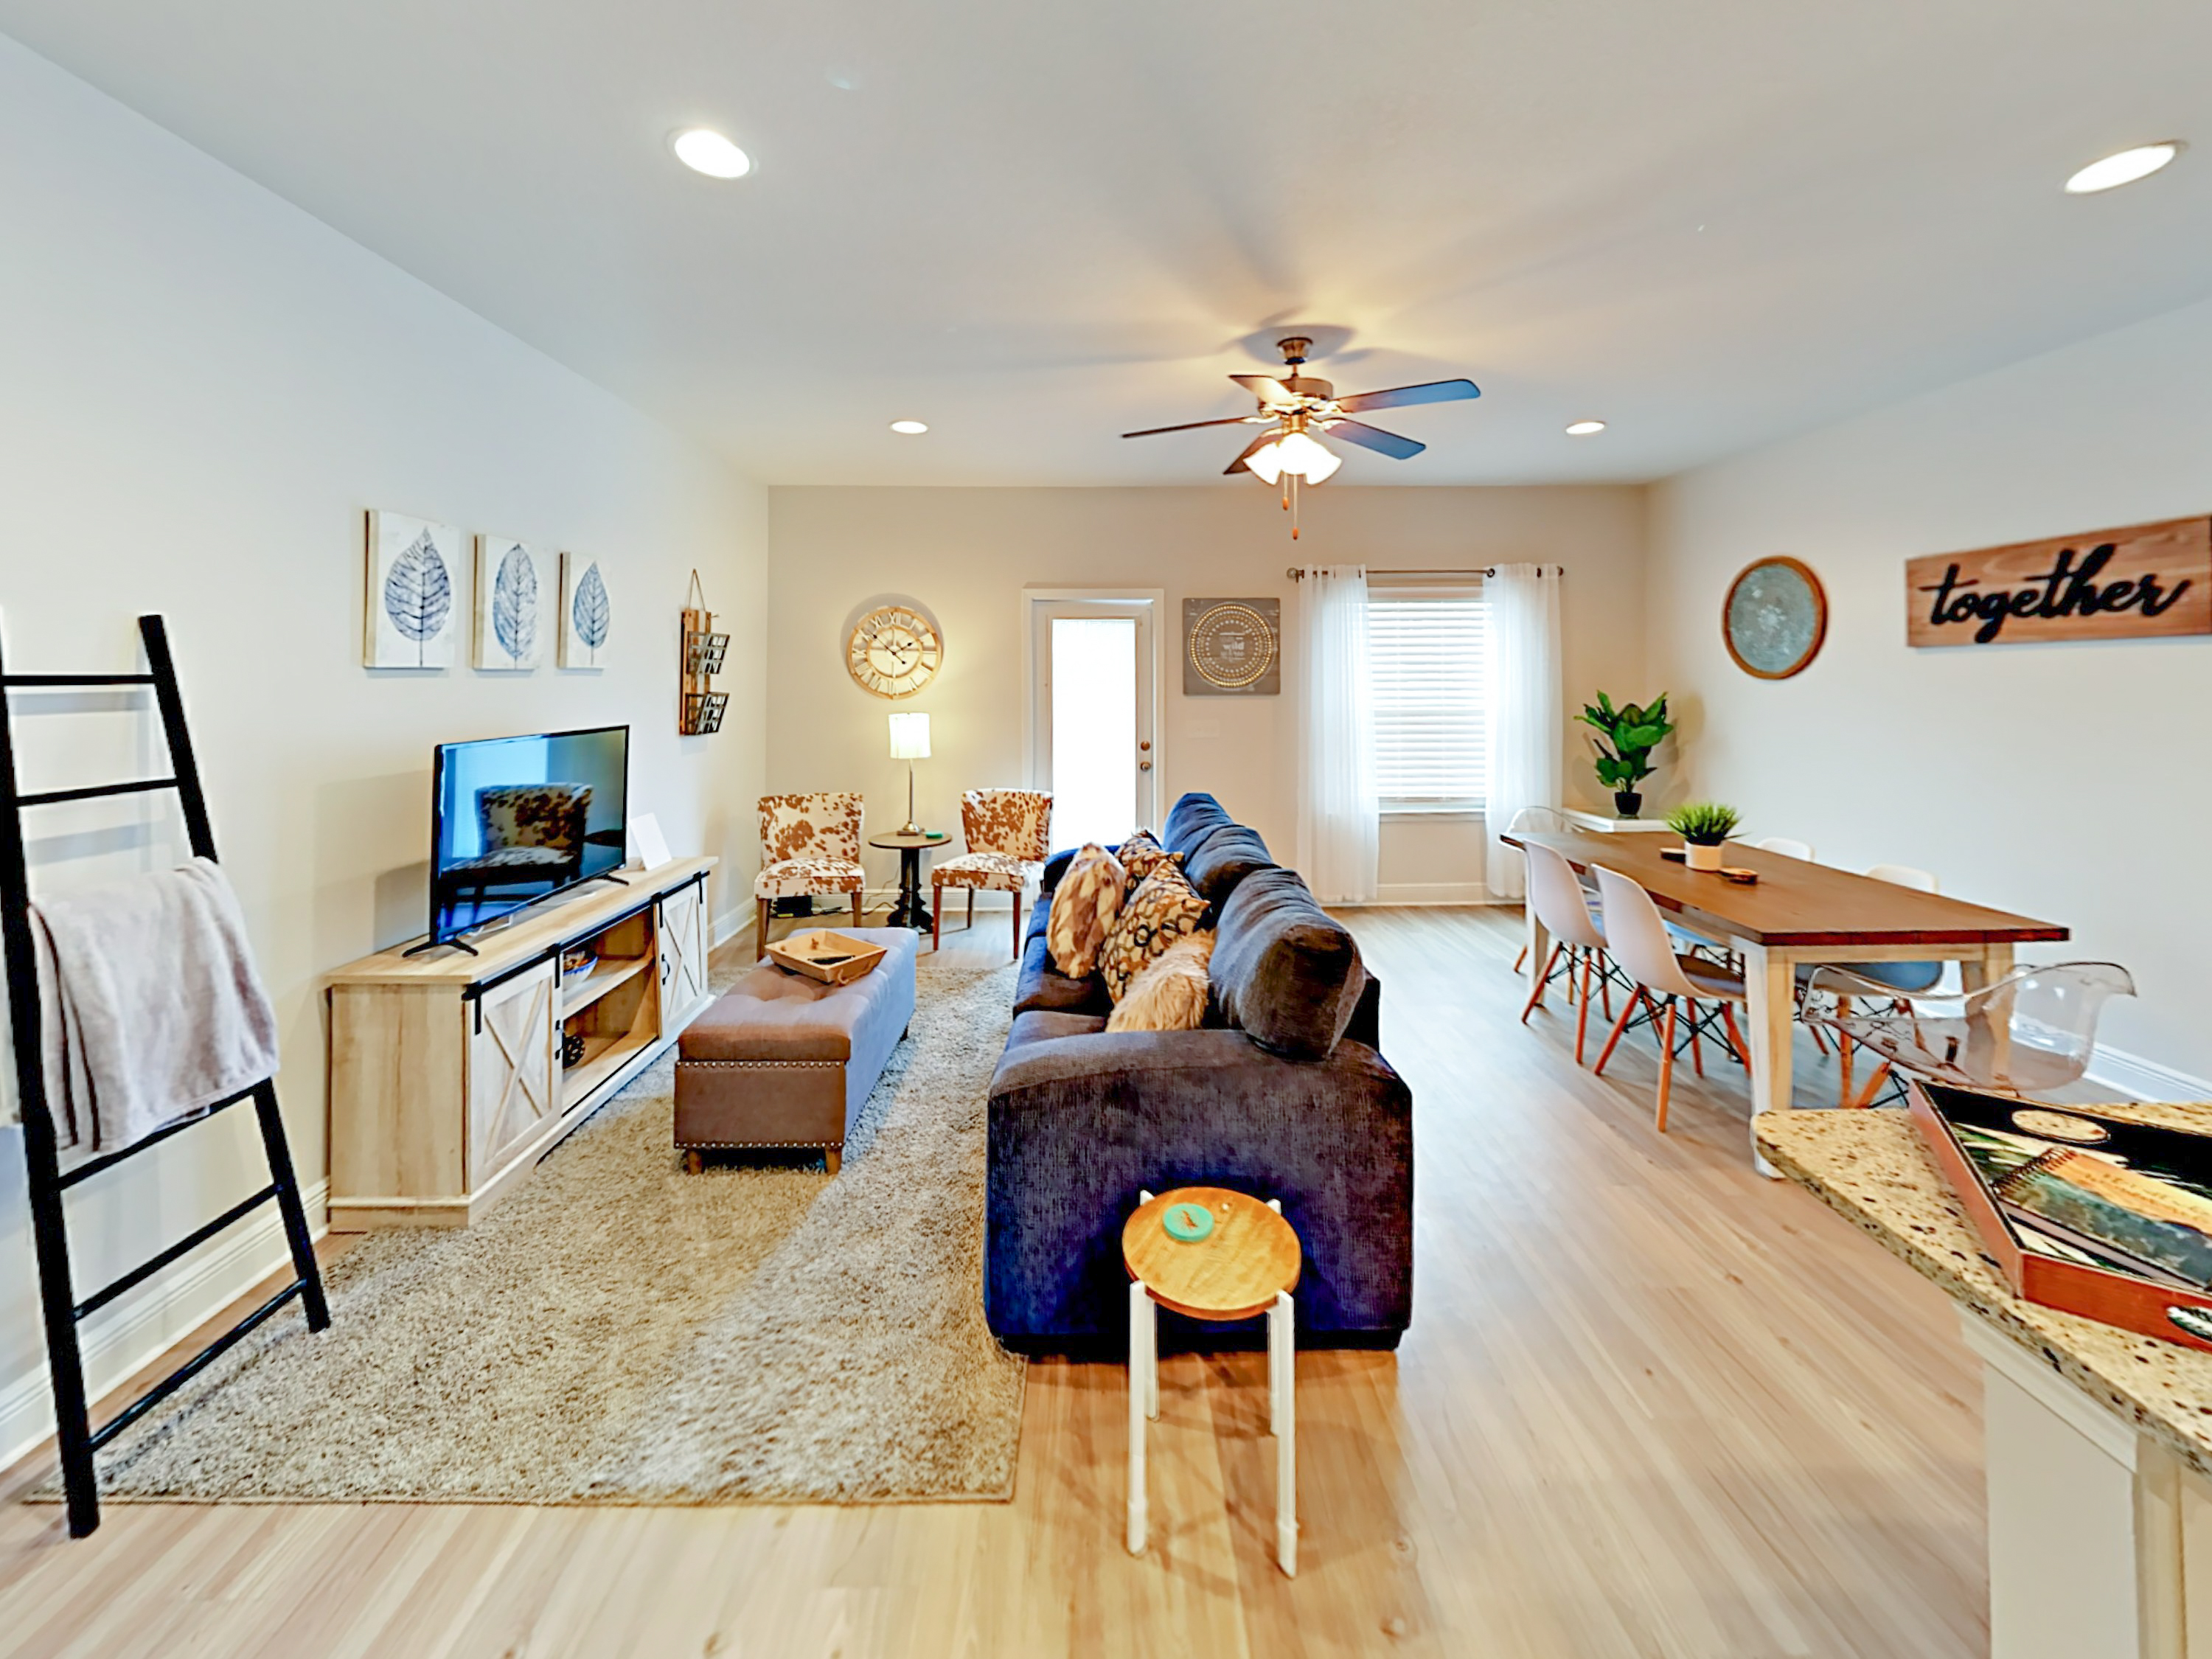 Panama City FL Vacation Rental This stunning home